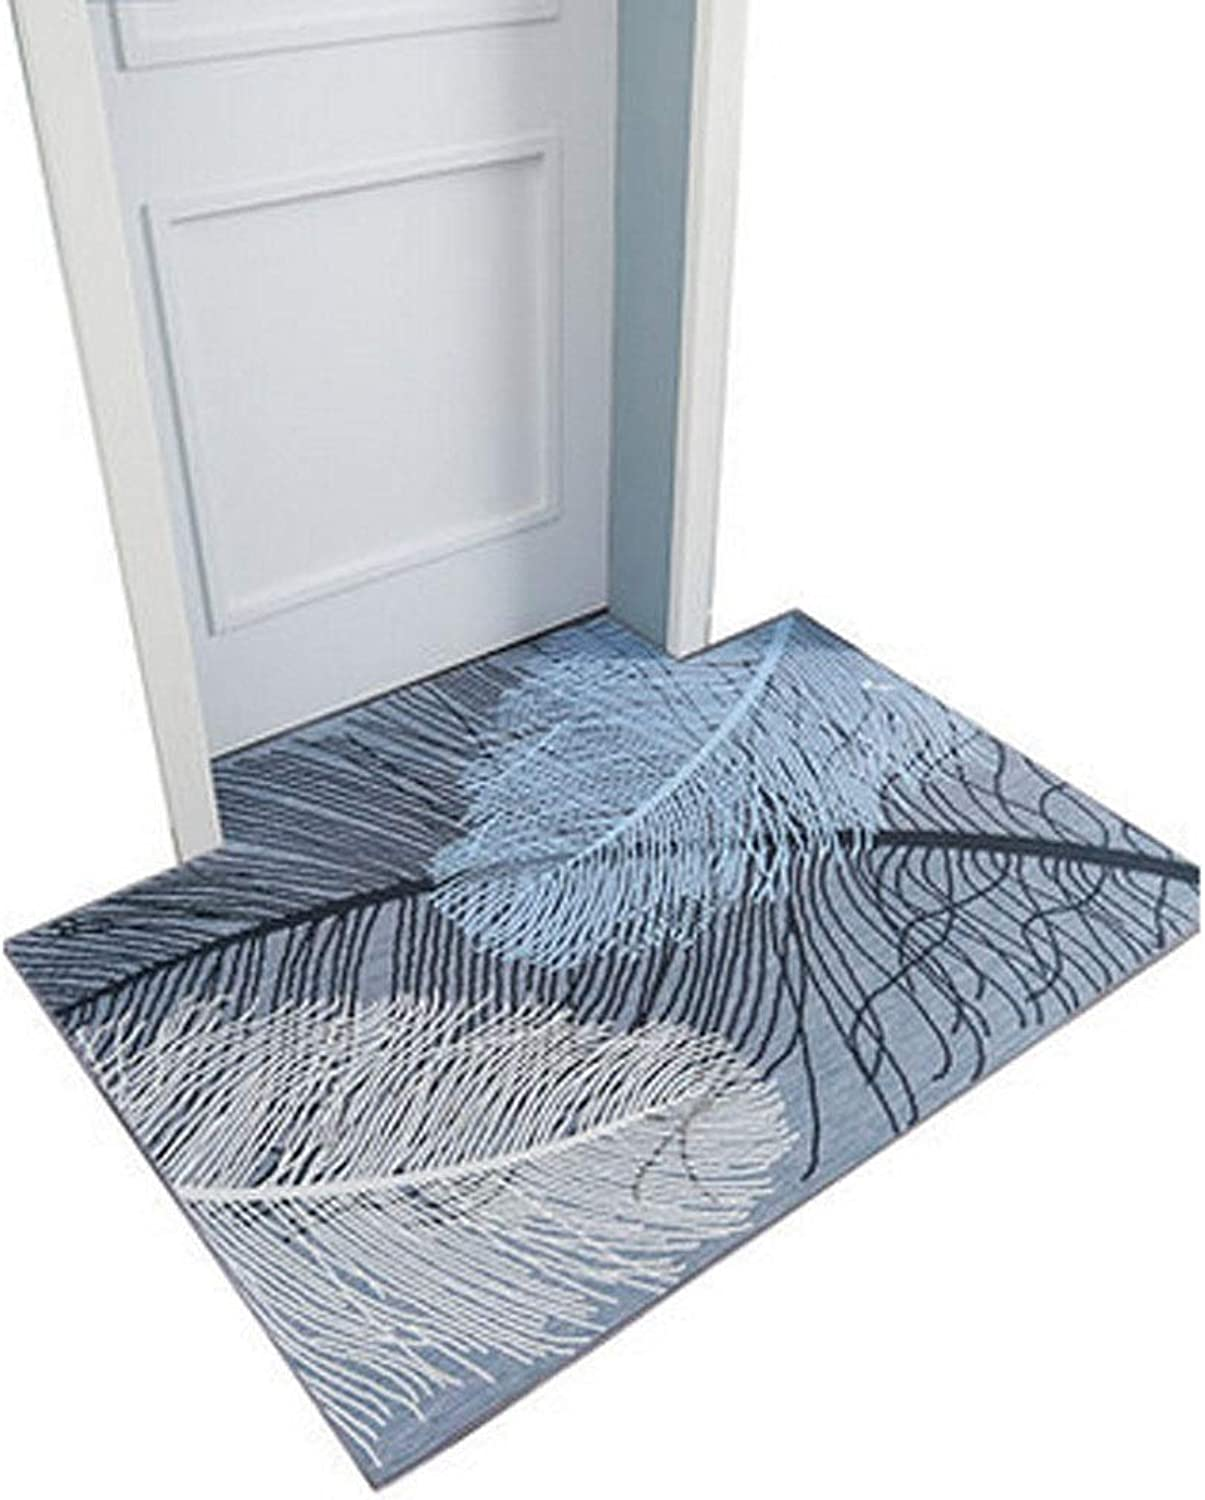 Kaiyitong Doormat,Suitable for Living Room Kitchen Bedroom Bathroom,Waterproof,Washable,Easy Clean,no Mold, no Aging Beautiful (Size   32  40 inch)